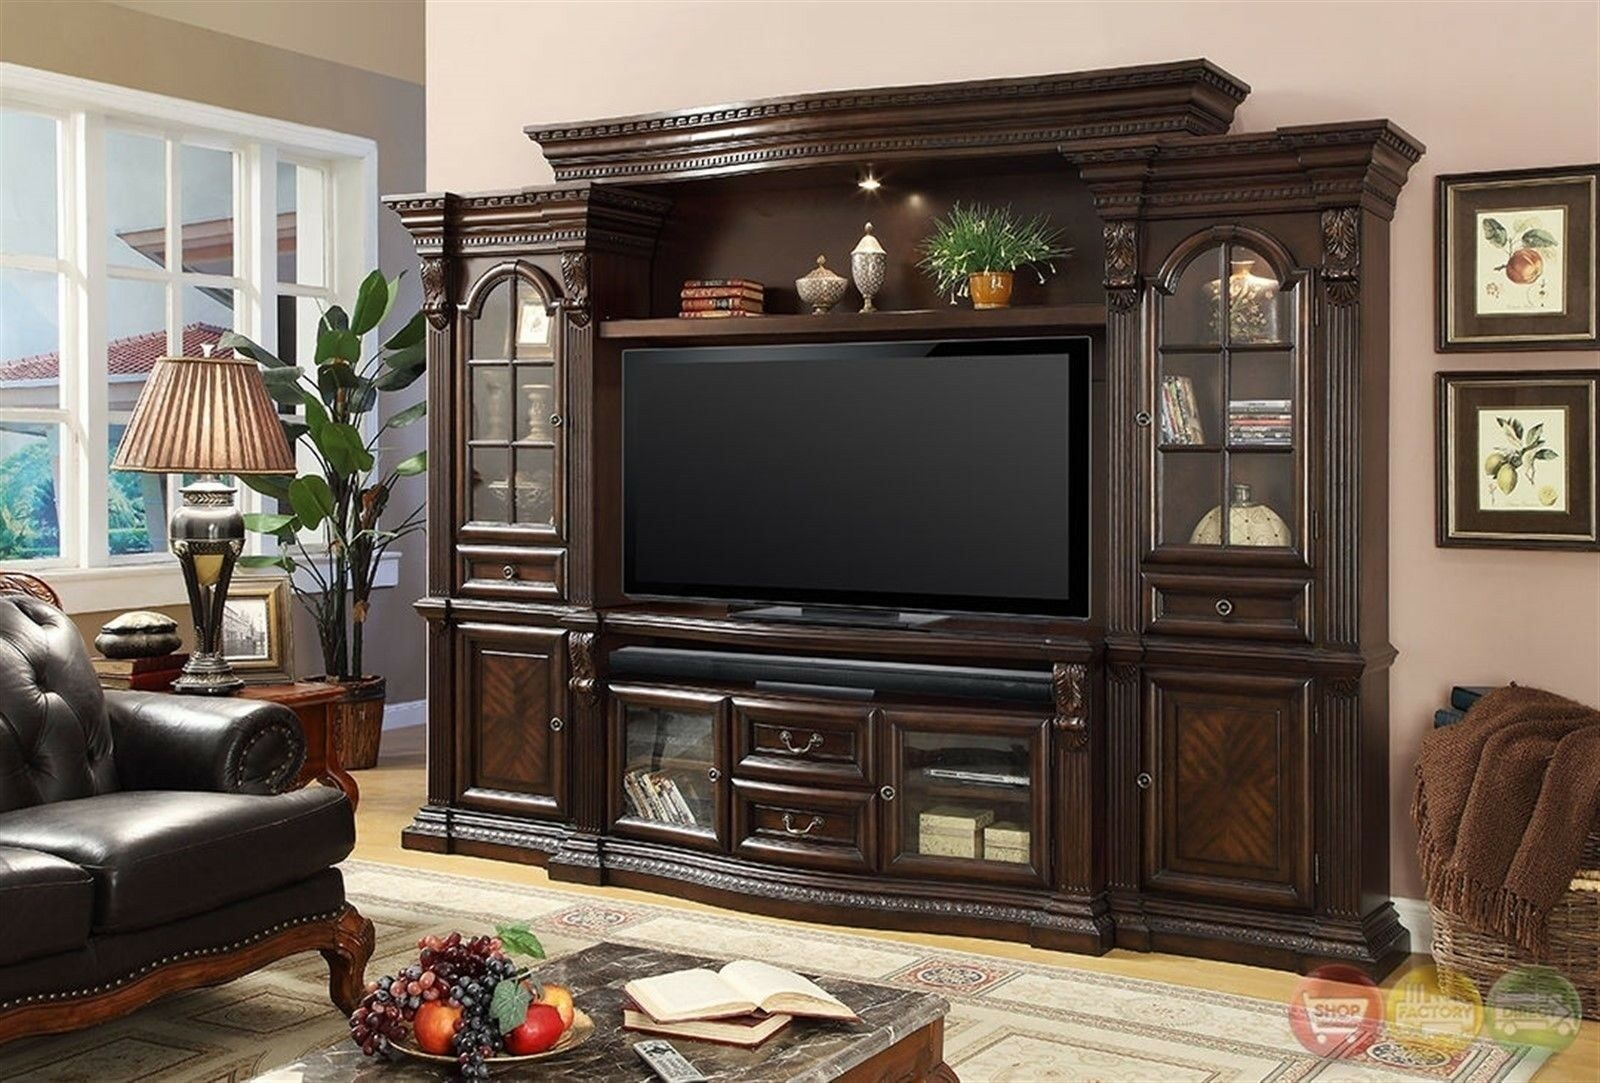 Details About Parker House Bella Traditional Dark Wood Entertainment Center 132 5 Wall Unit